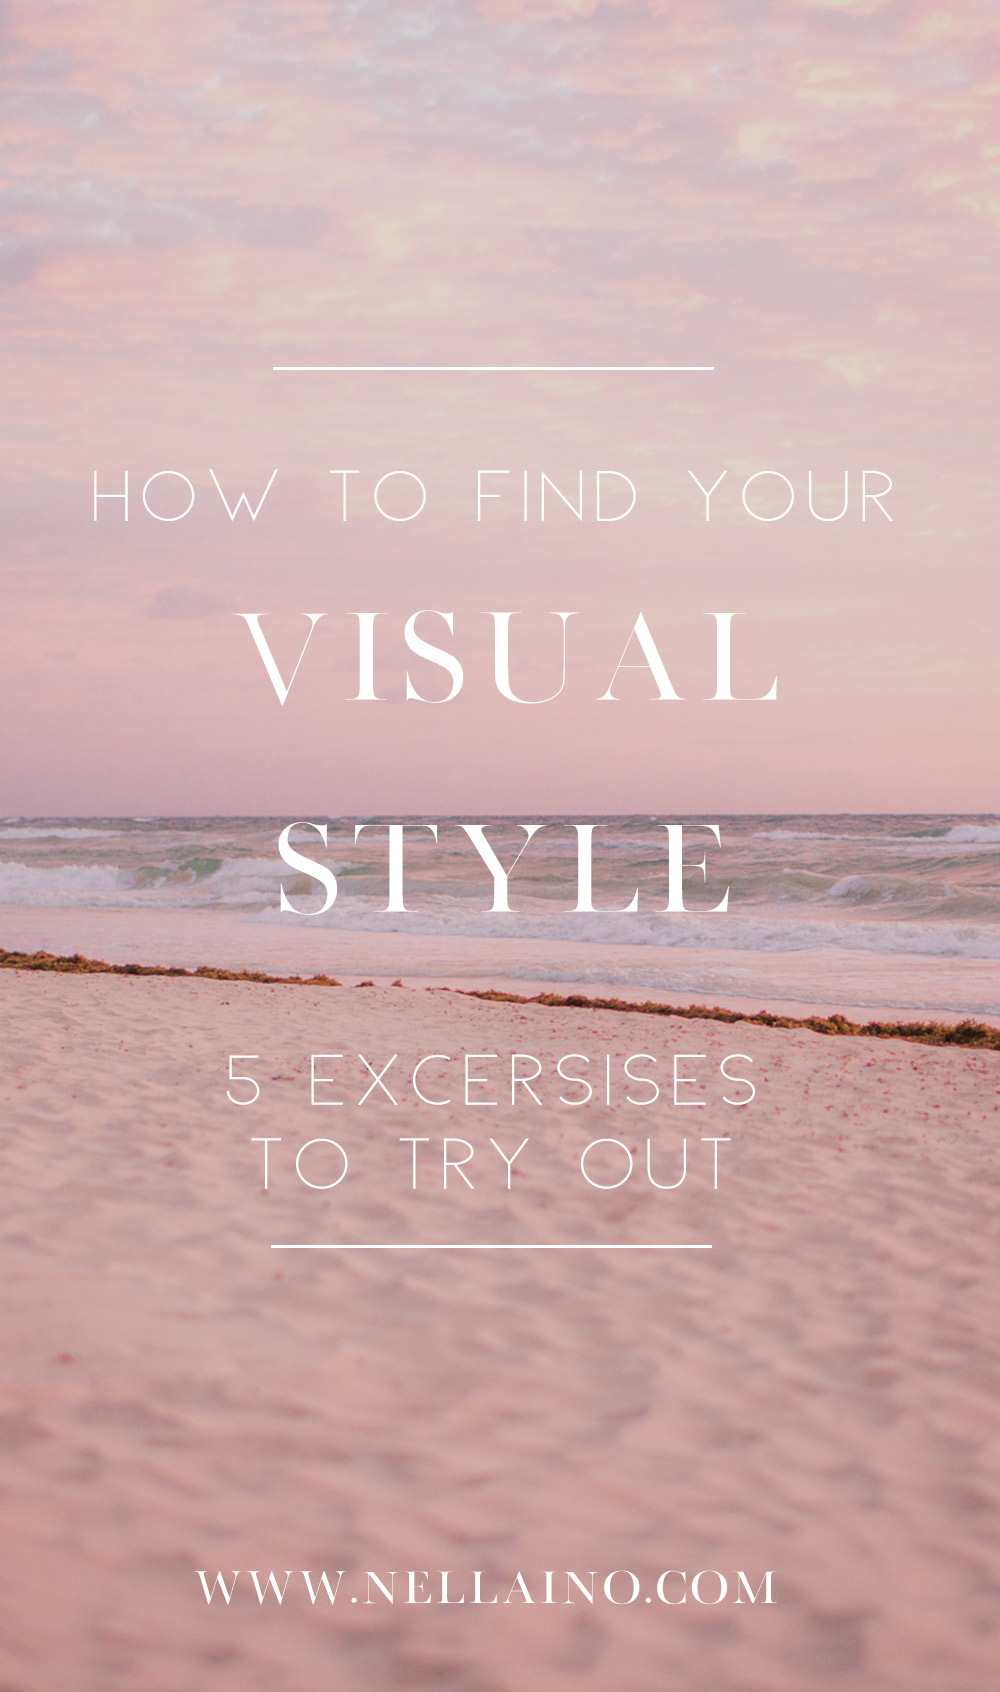 Tips to find your visual style. www.nellaino.com